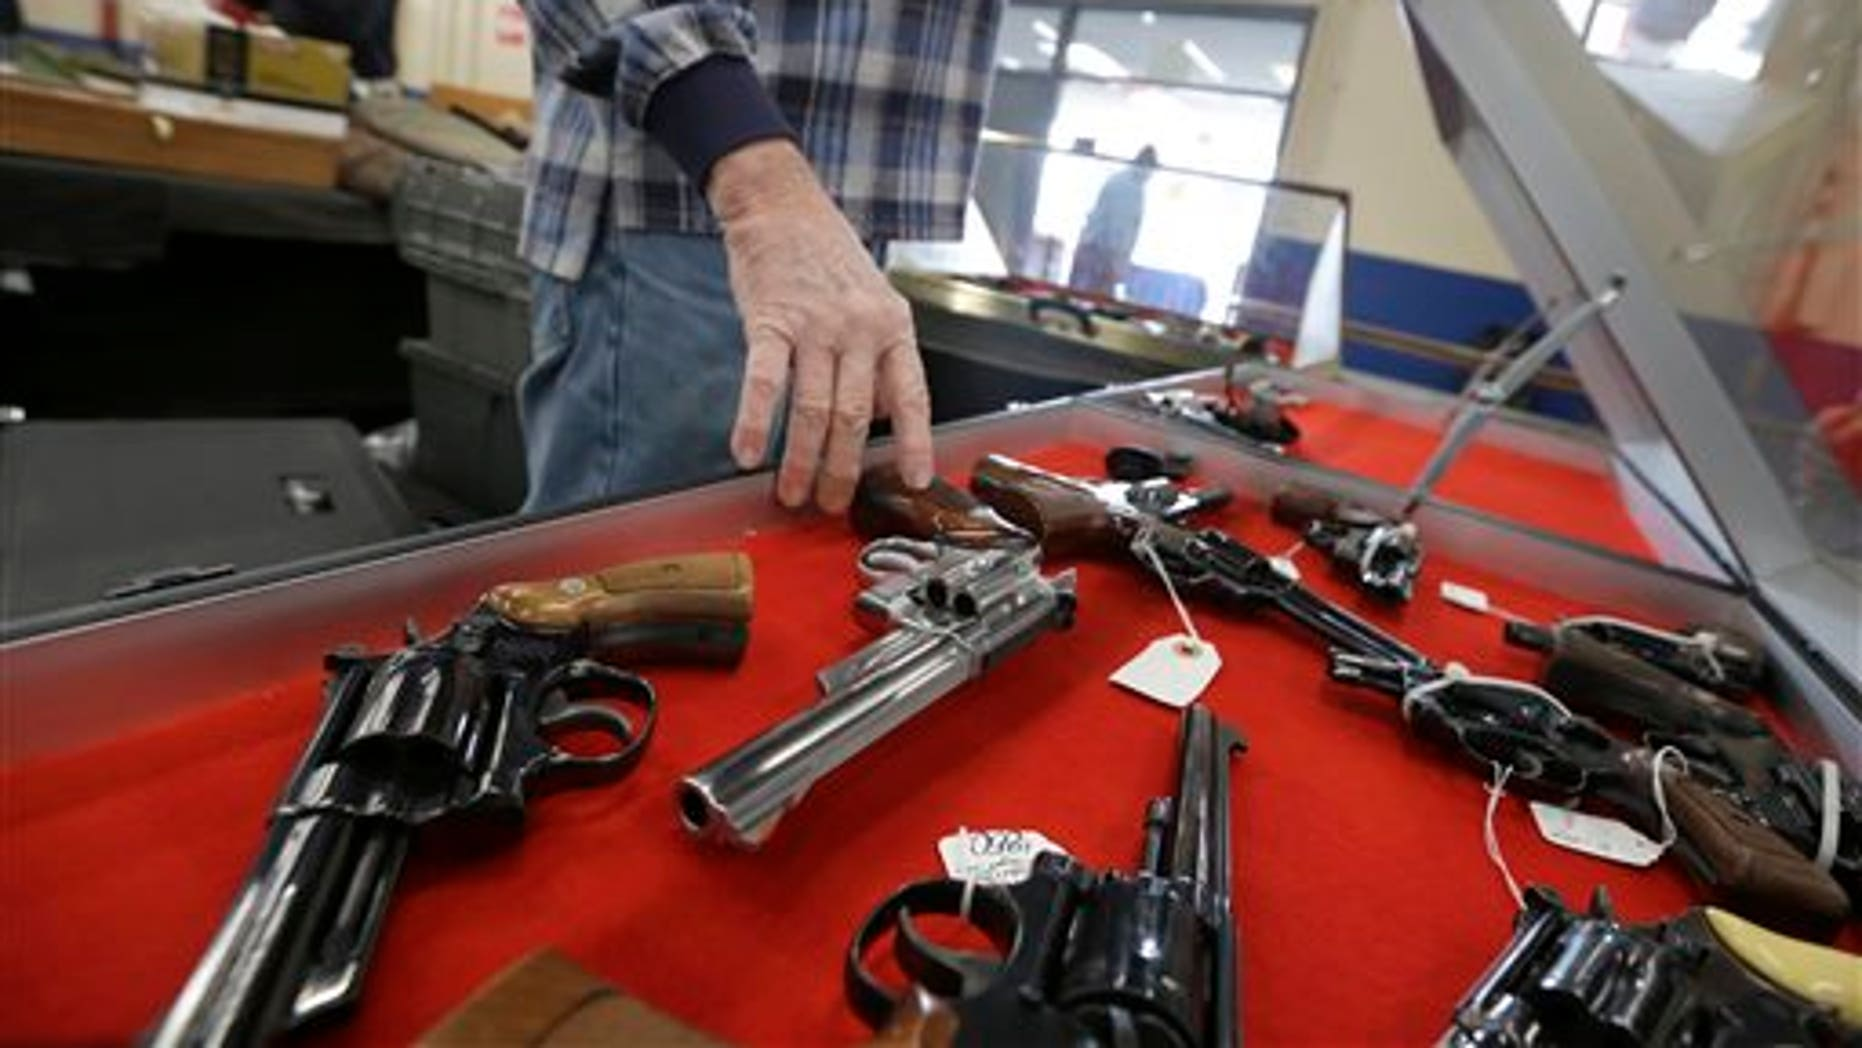 In this Friday, Feb. 6, 2015 photo, a dealer arranges handguns in a display case in advance of a show at the Arkansas State Fairgrounds in Little Rock, Ark. Arkansas gun advocates in the Legislature are supporting bills that would permit firearms on university campuses, expanding citizens' rights to use deadly force and other efforts. (AP Photo/Danny Johnston)